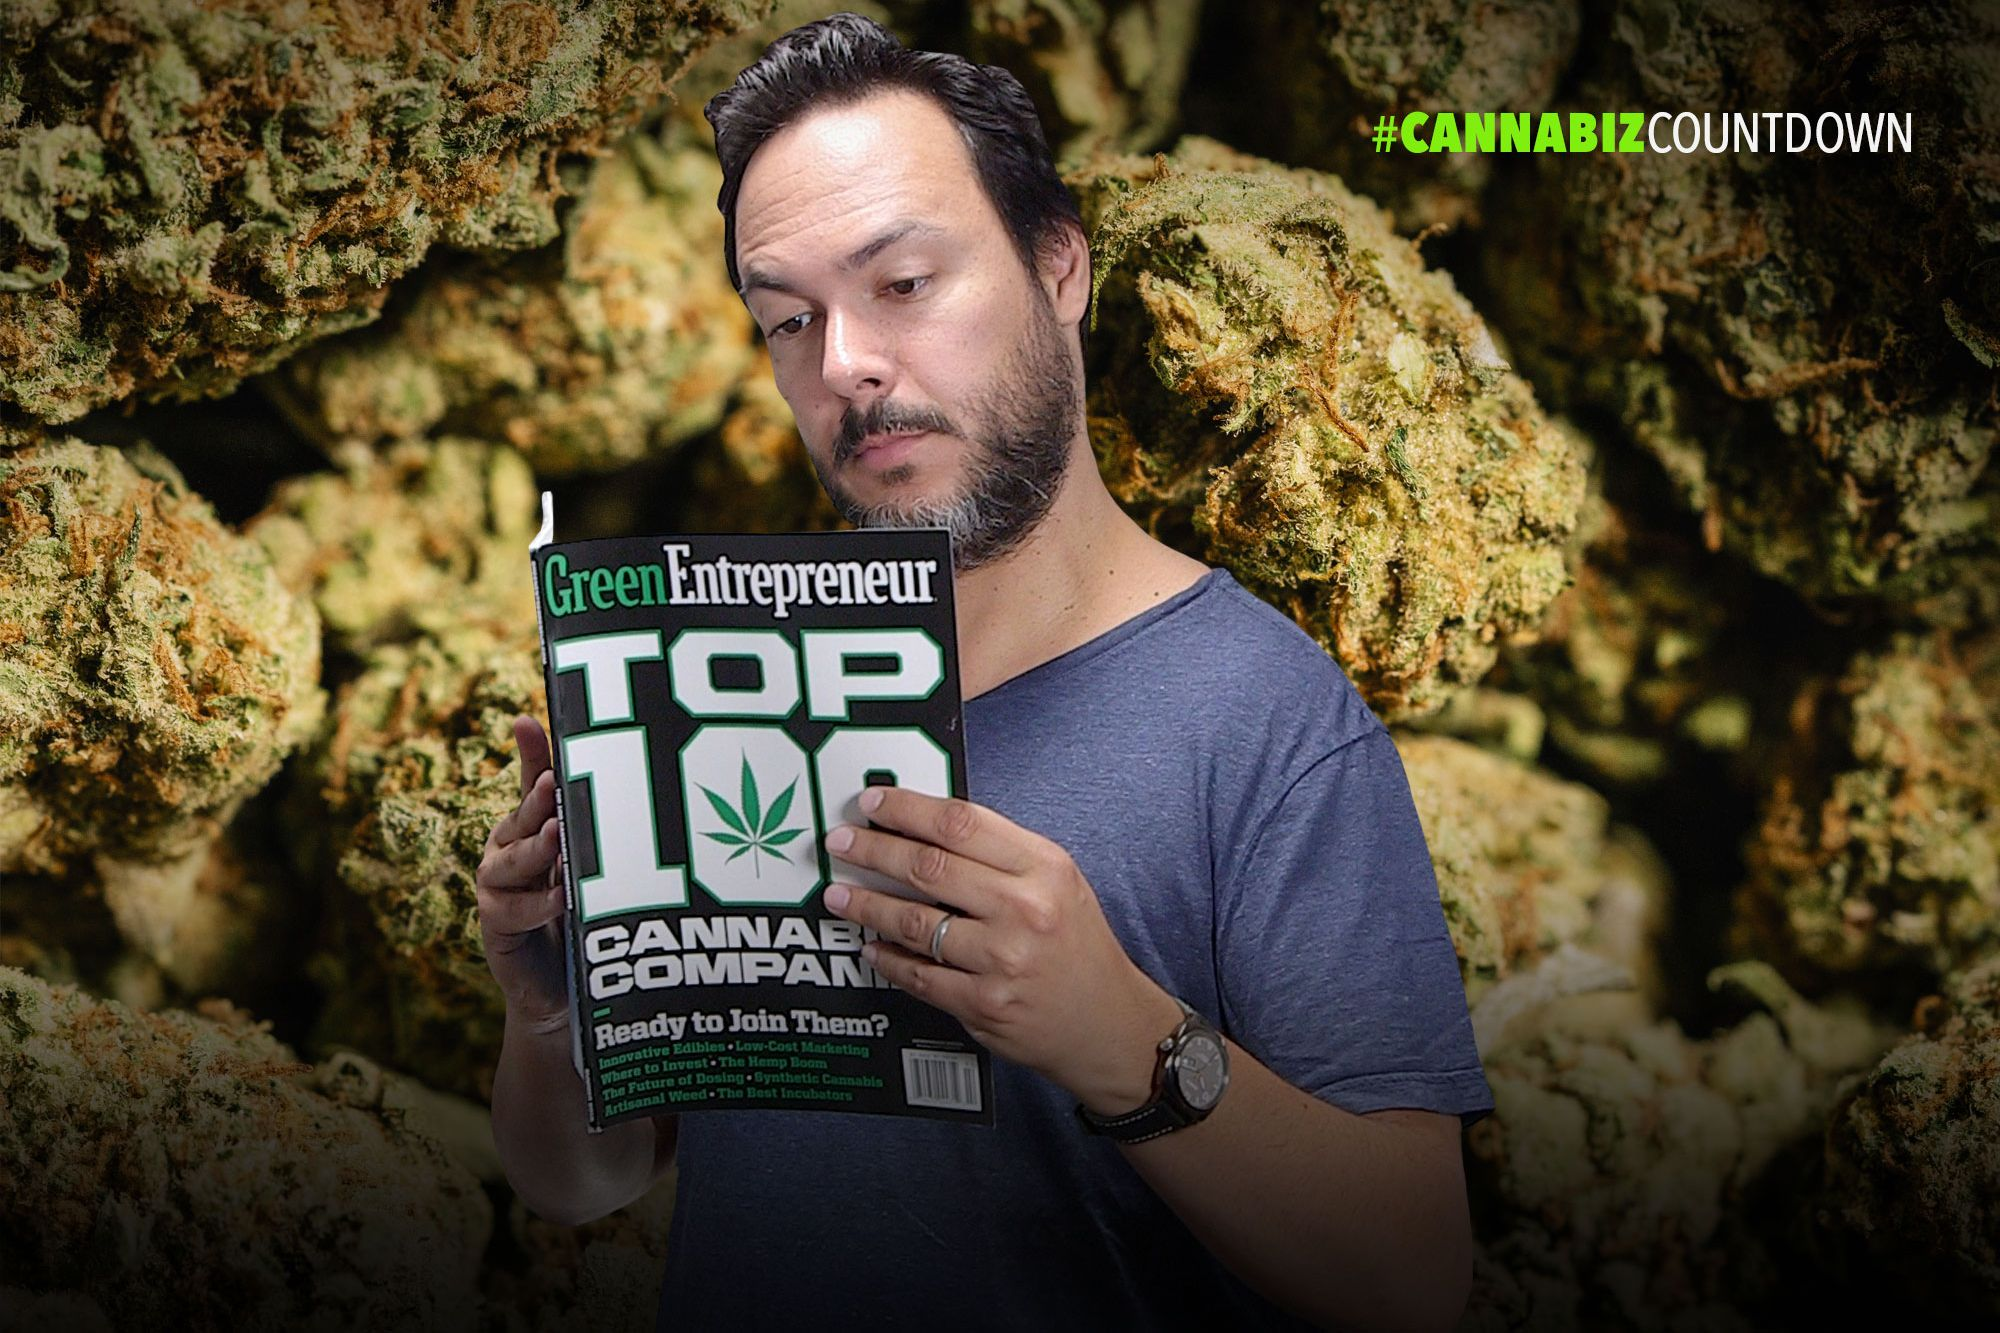 Entrepreneur Names the Top 100 Cannabis Companies (60-Second Video)